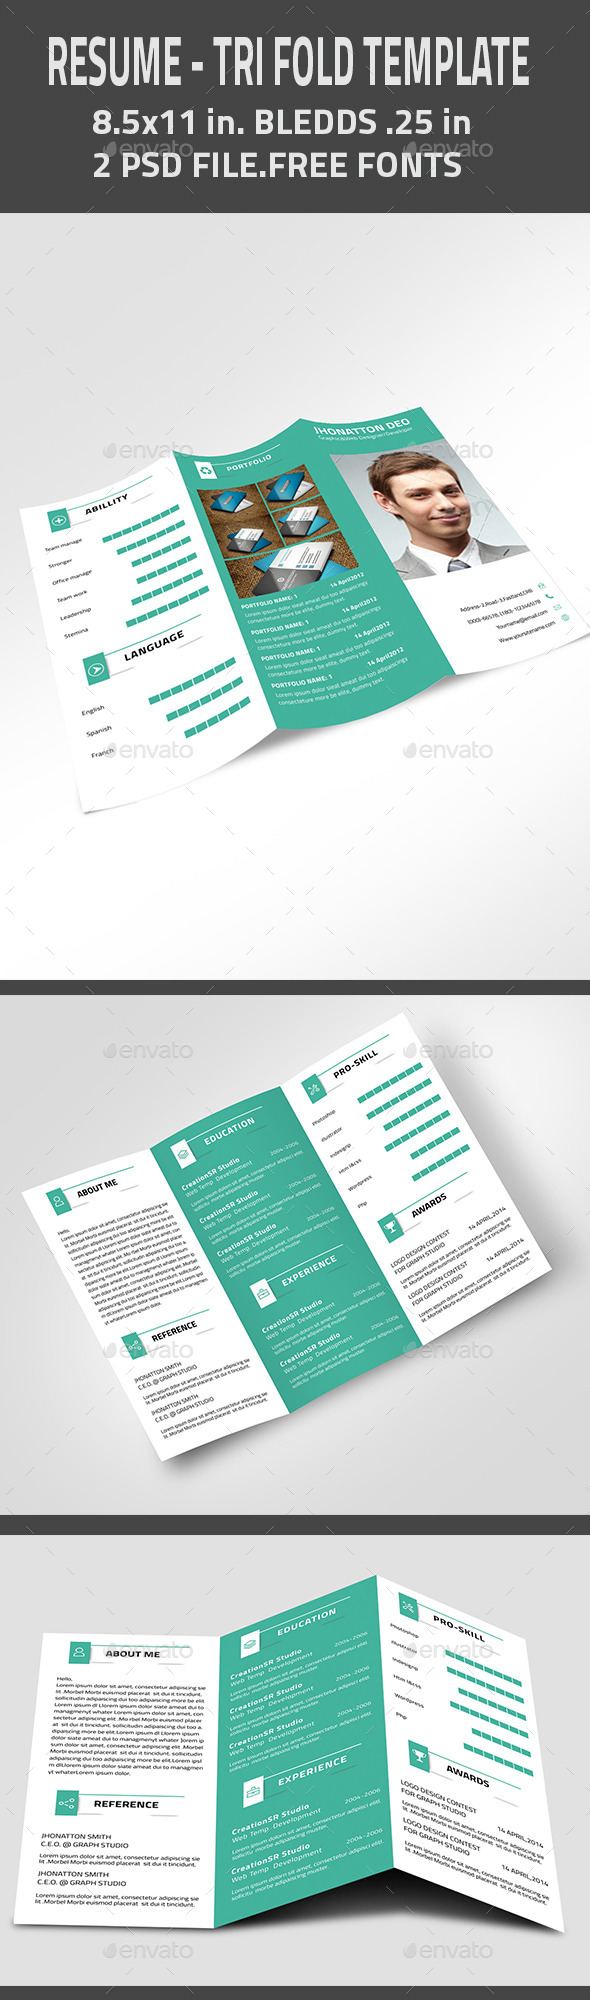 GraphicRiver Resume Trifold Template 11202153